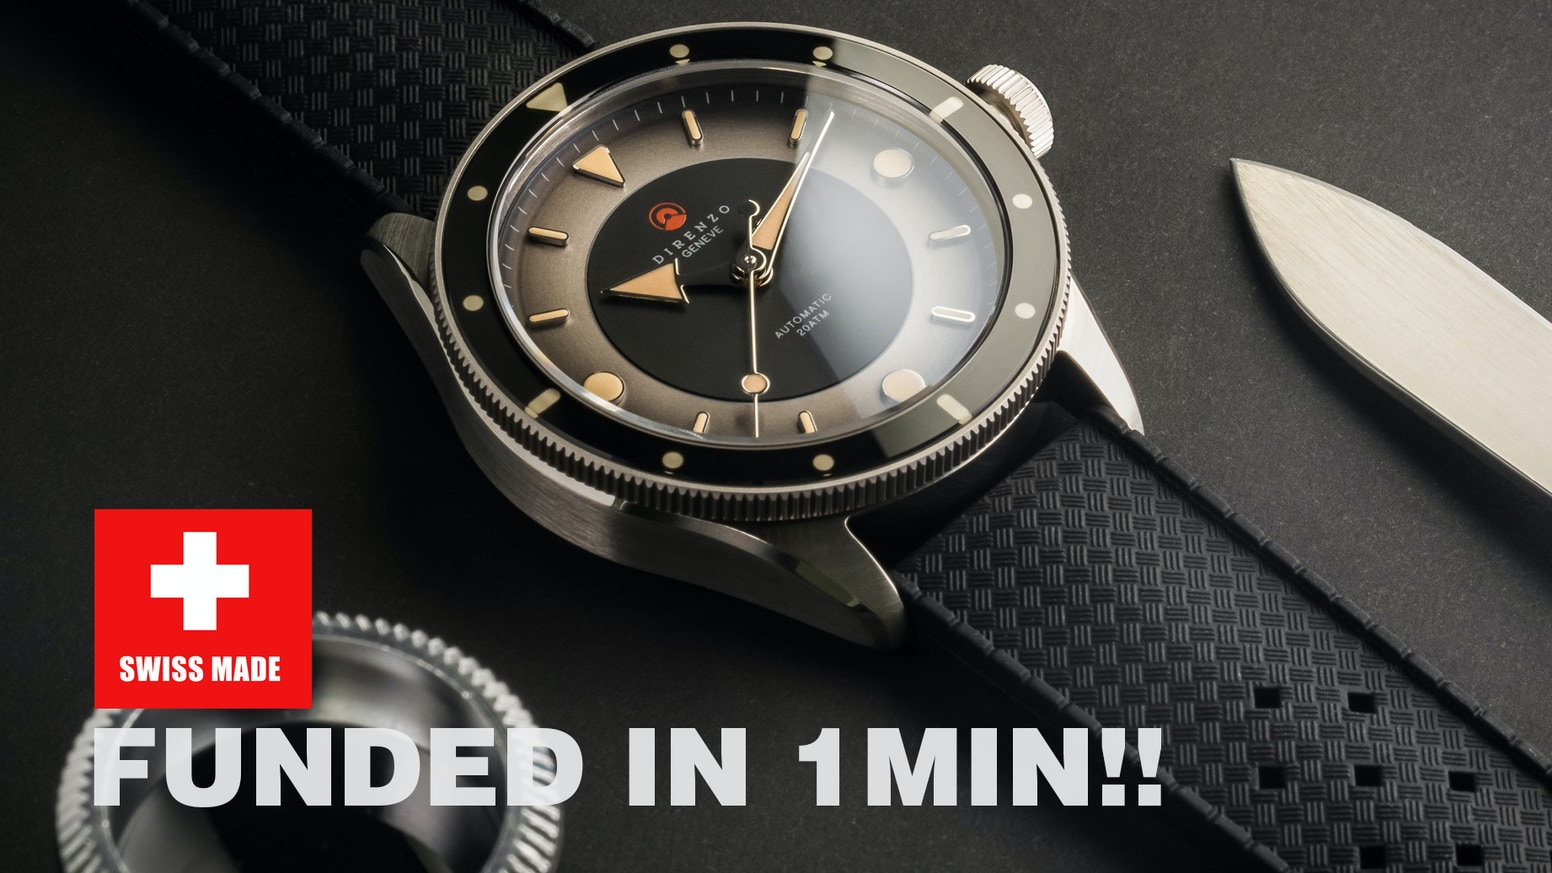 The Eclipse is a timepiece that pays homage to iconic dive models from the 60s. Top quality timepiece build to last.